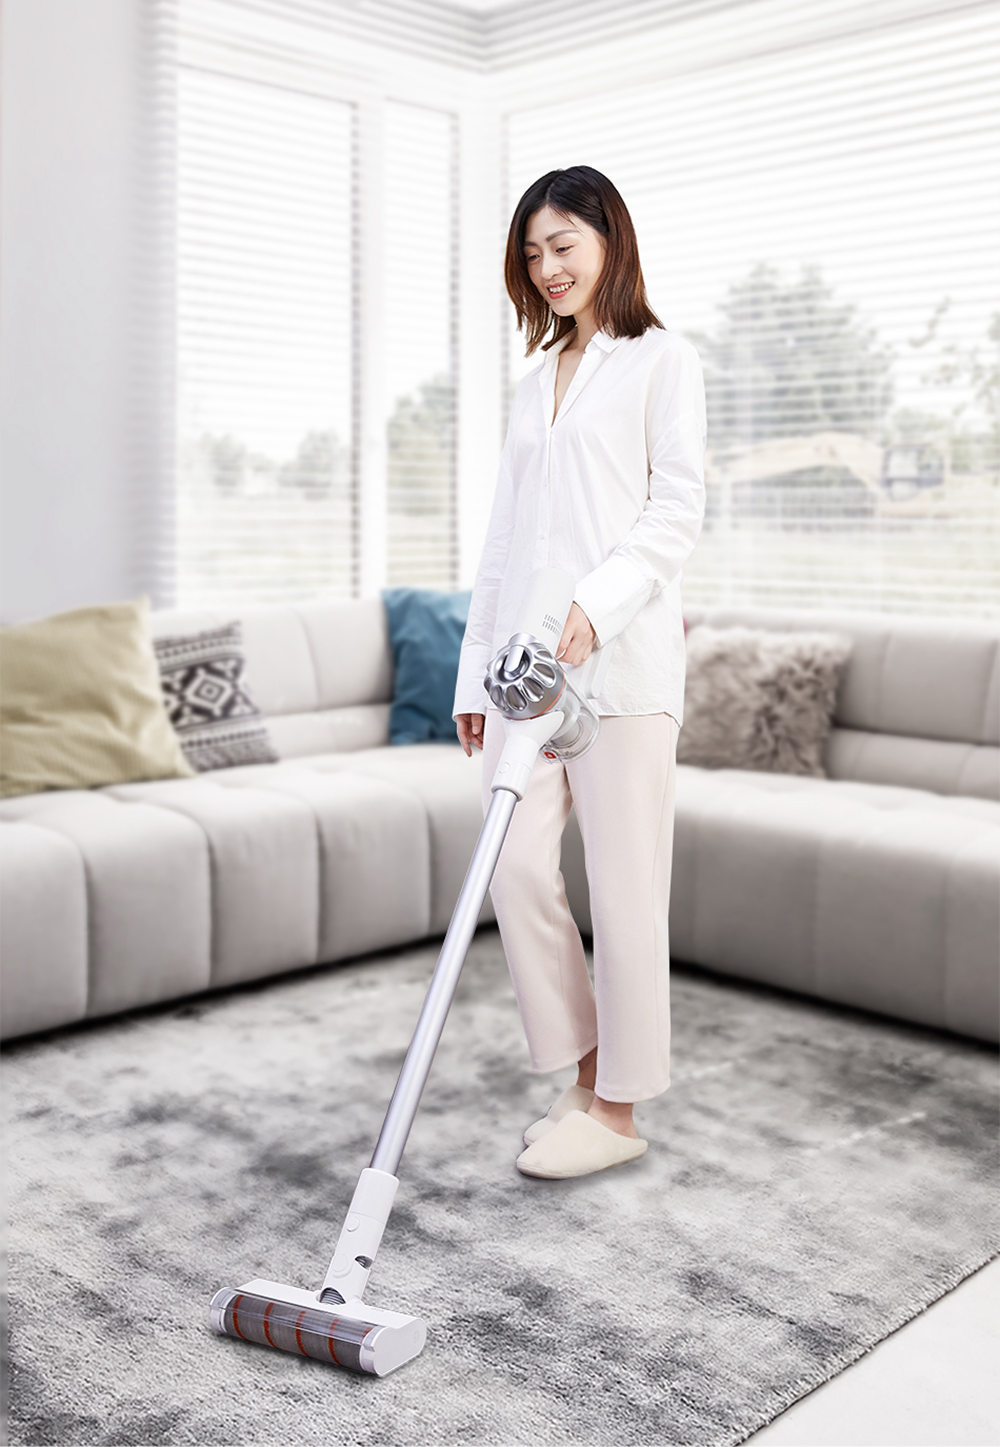 Xiaomi Dreame V9 Pro Cordless Stick Vacuum Cleaner 20000 Pa Suction Anti-winding Hair Mite Cleaning 60 Minutes Run Time - White